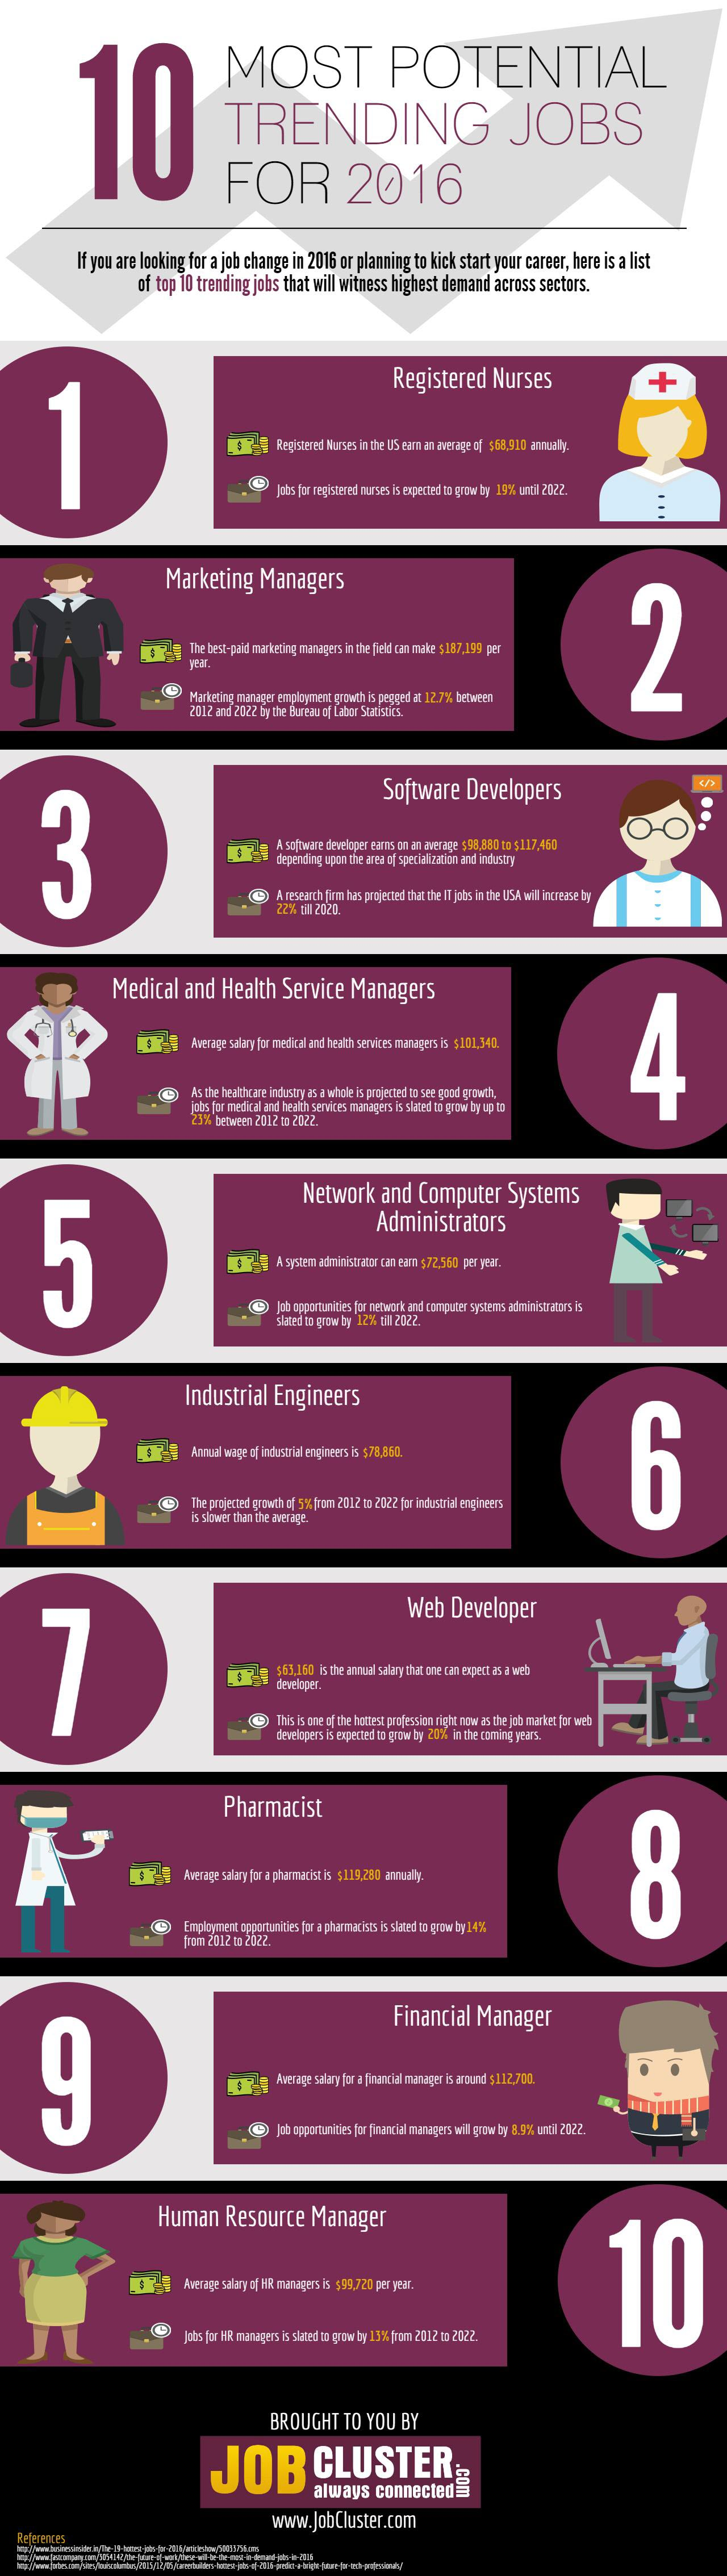 hottest jobs for 2016